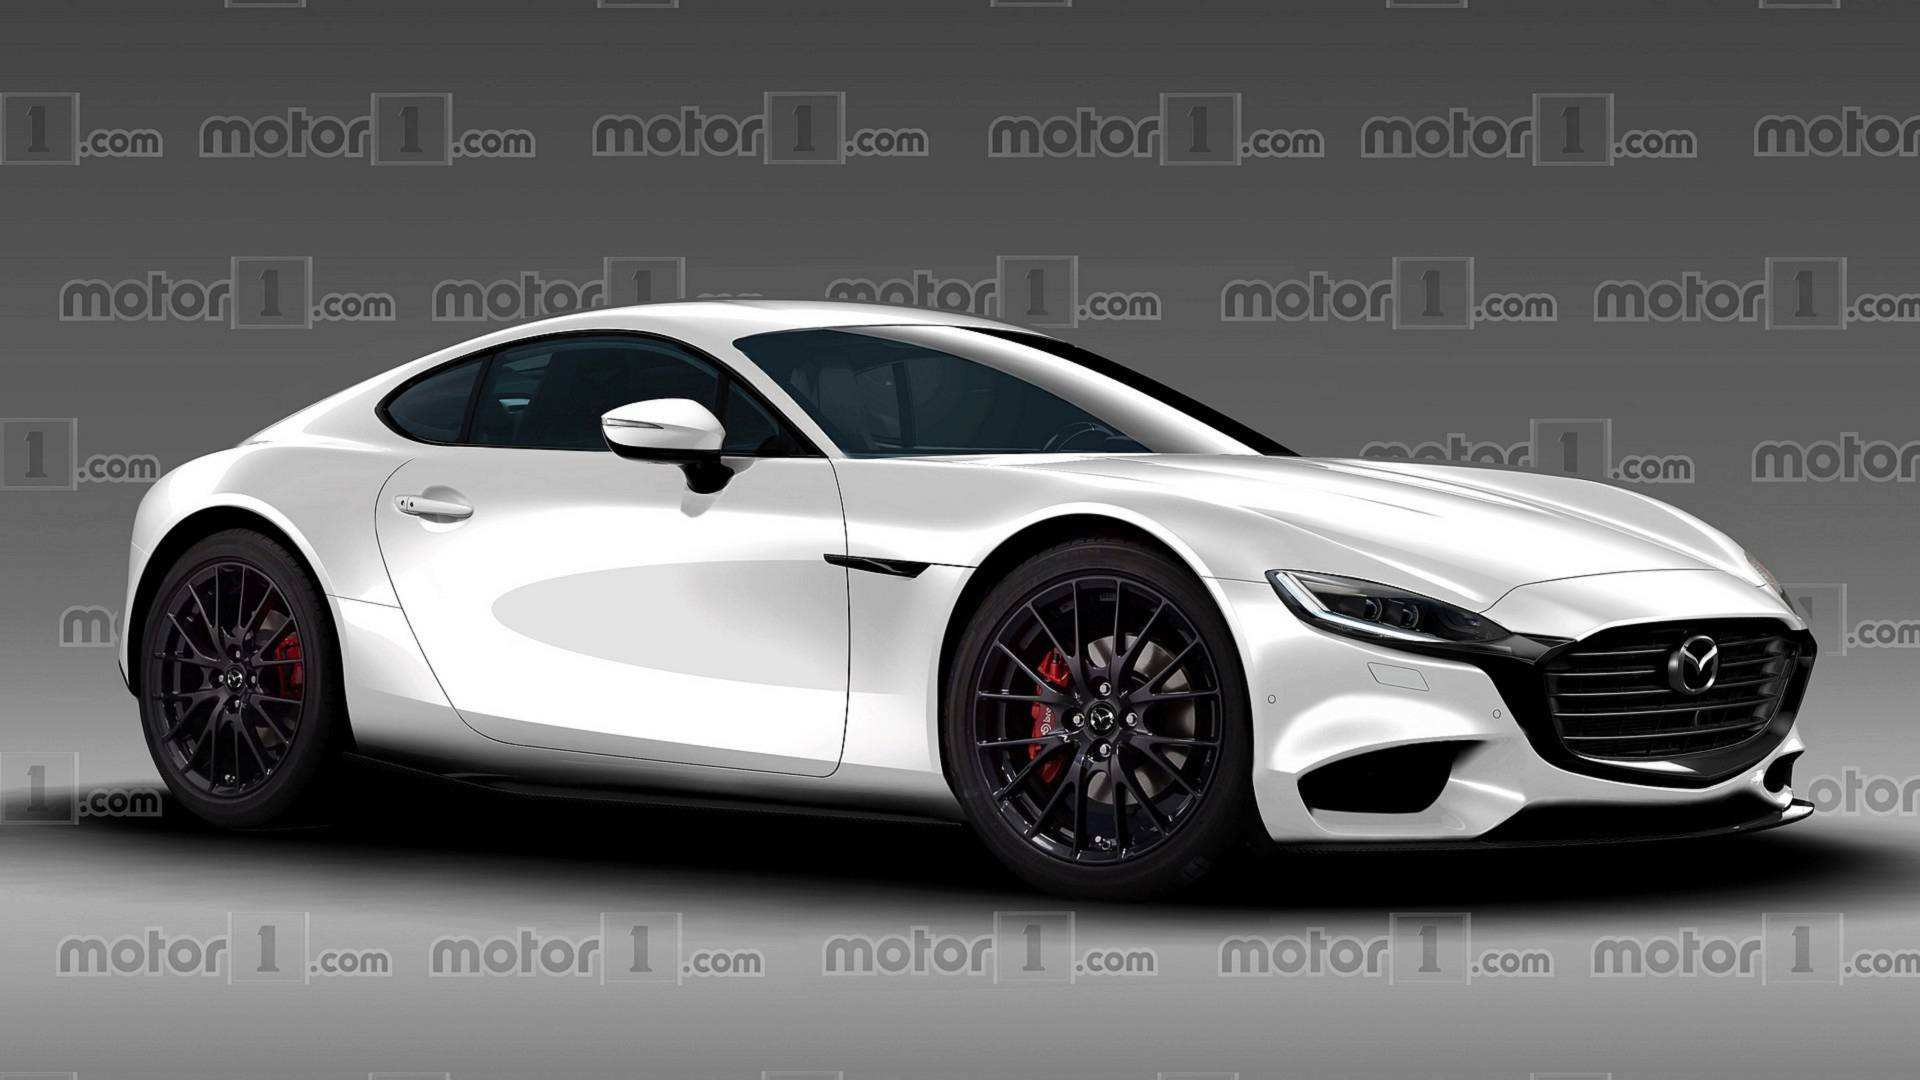 71 The 2020 Mazda RX7s Exterior